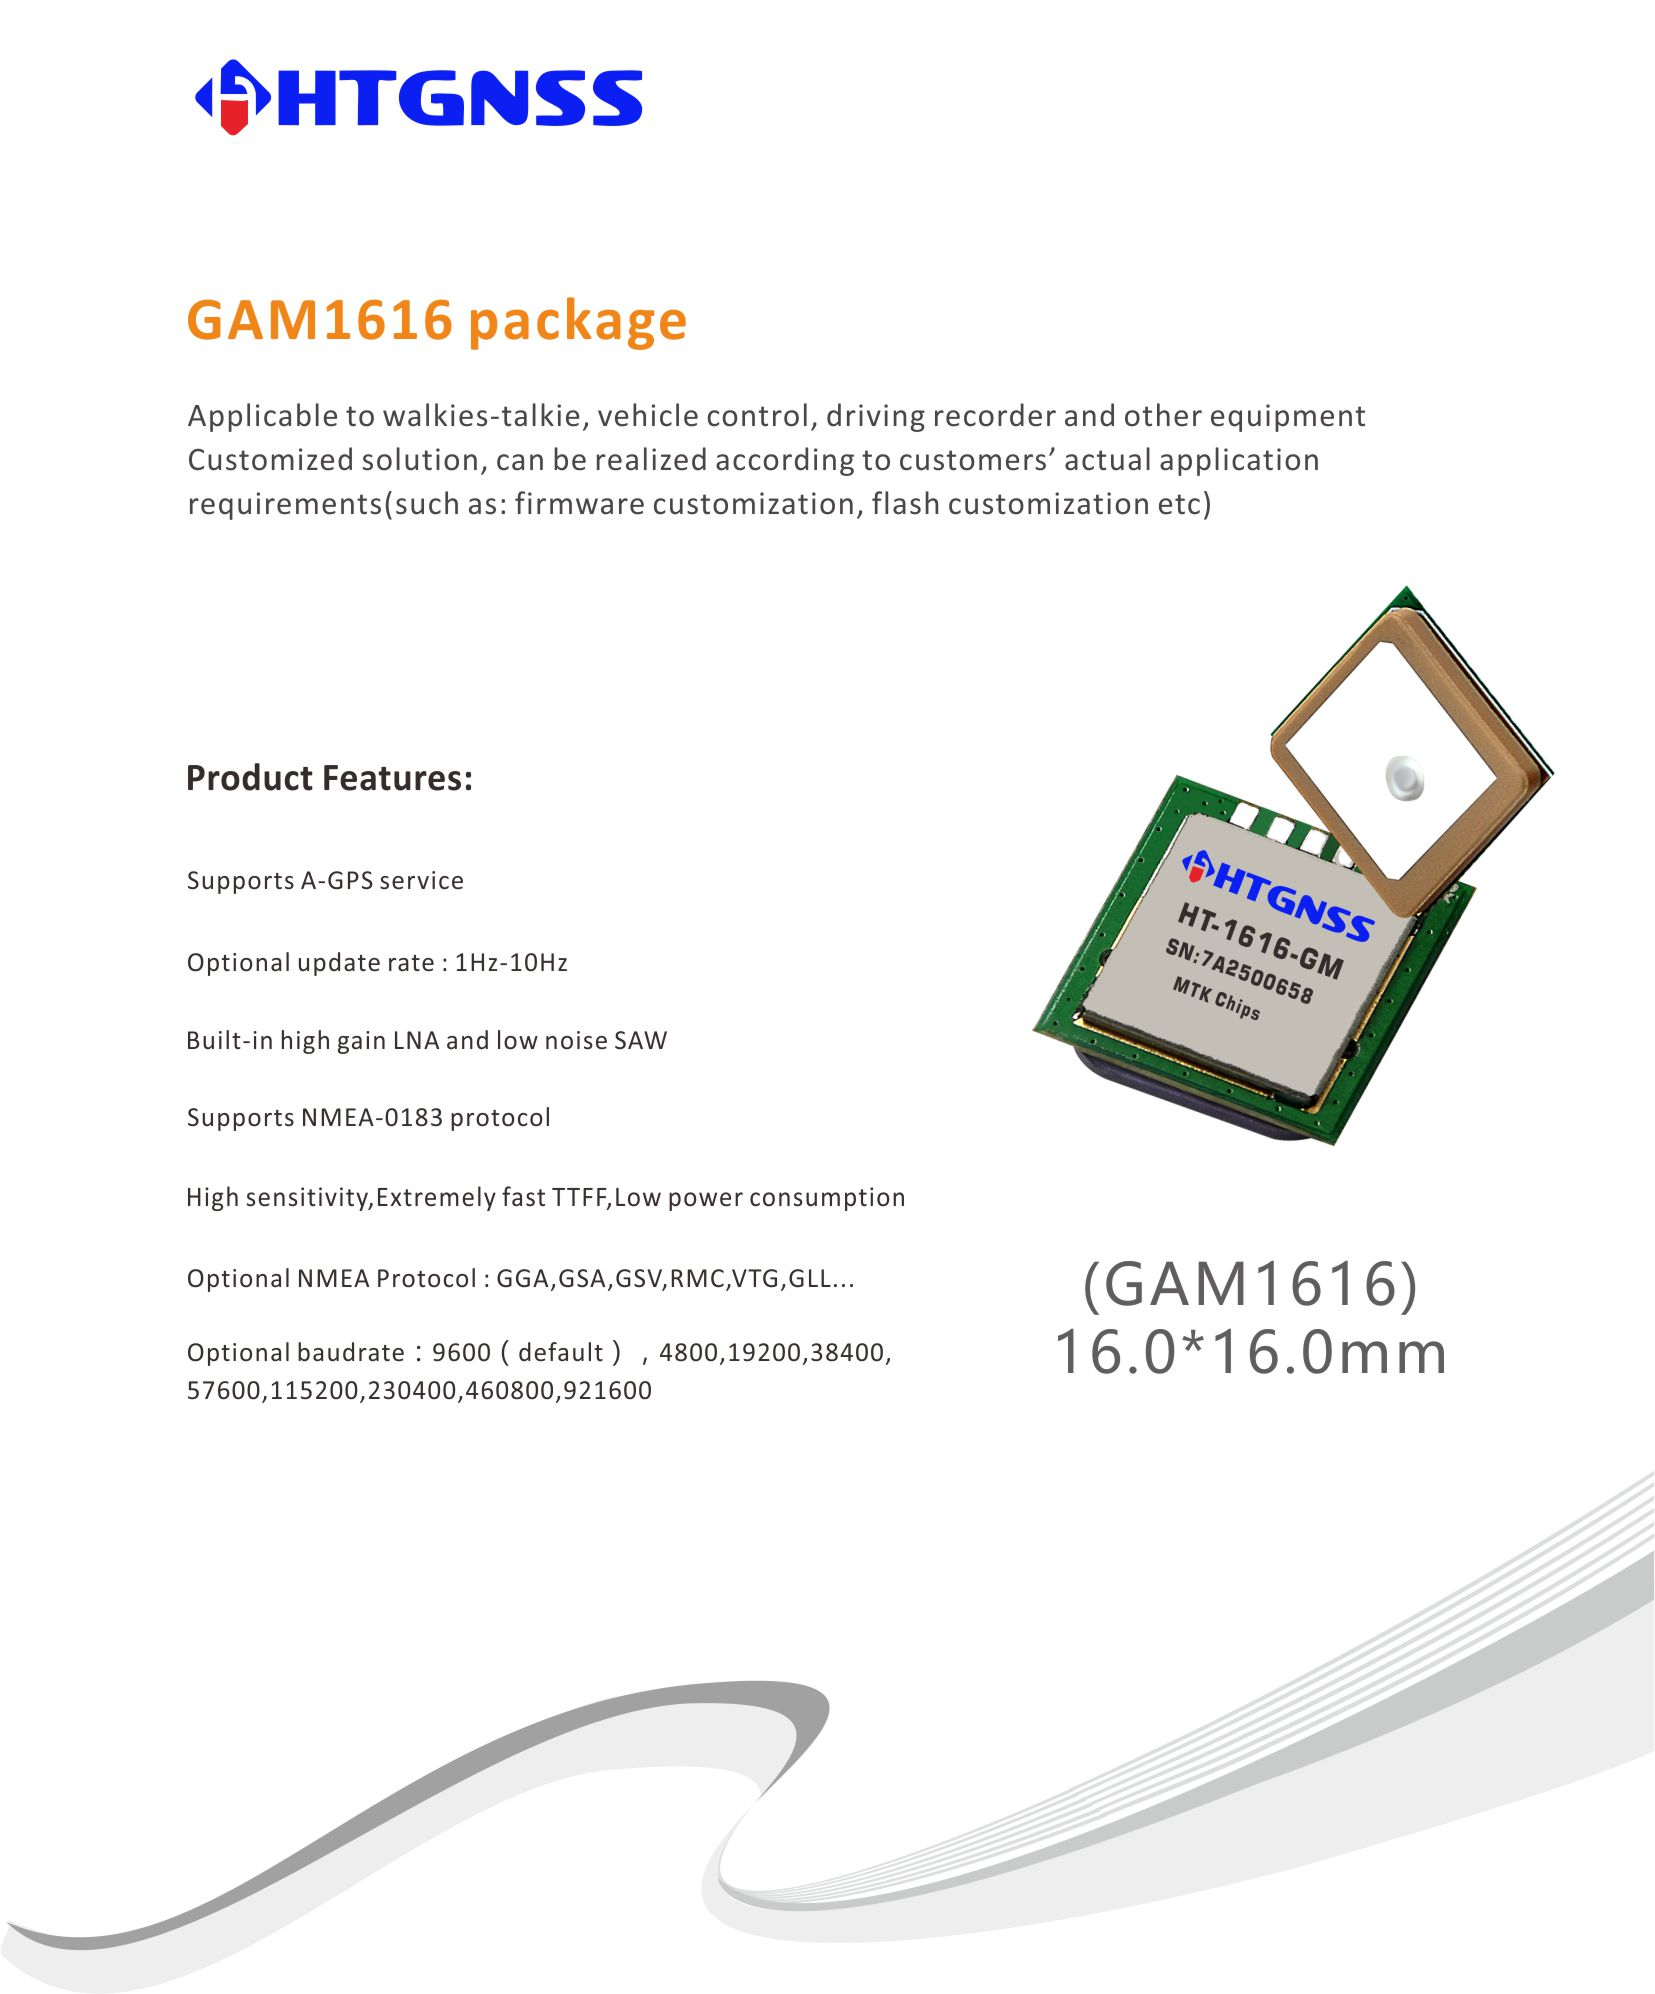 HTGNSS professional offer GPS Chip,GNSS Chip,GPS Module,GNSS Module,GPS Receiver,GNSS Receiver,Antenna GPS,GPS Board,GNSS Board